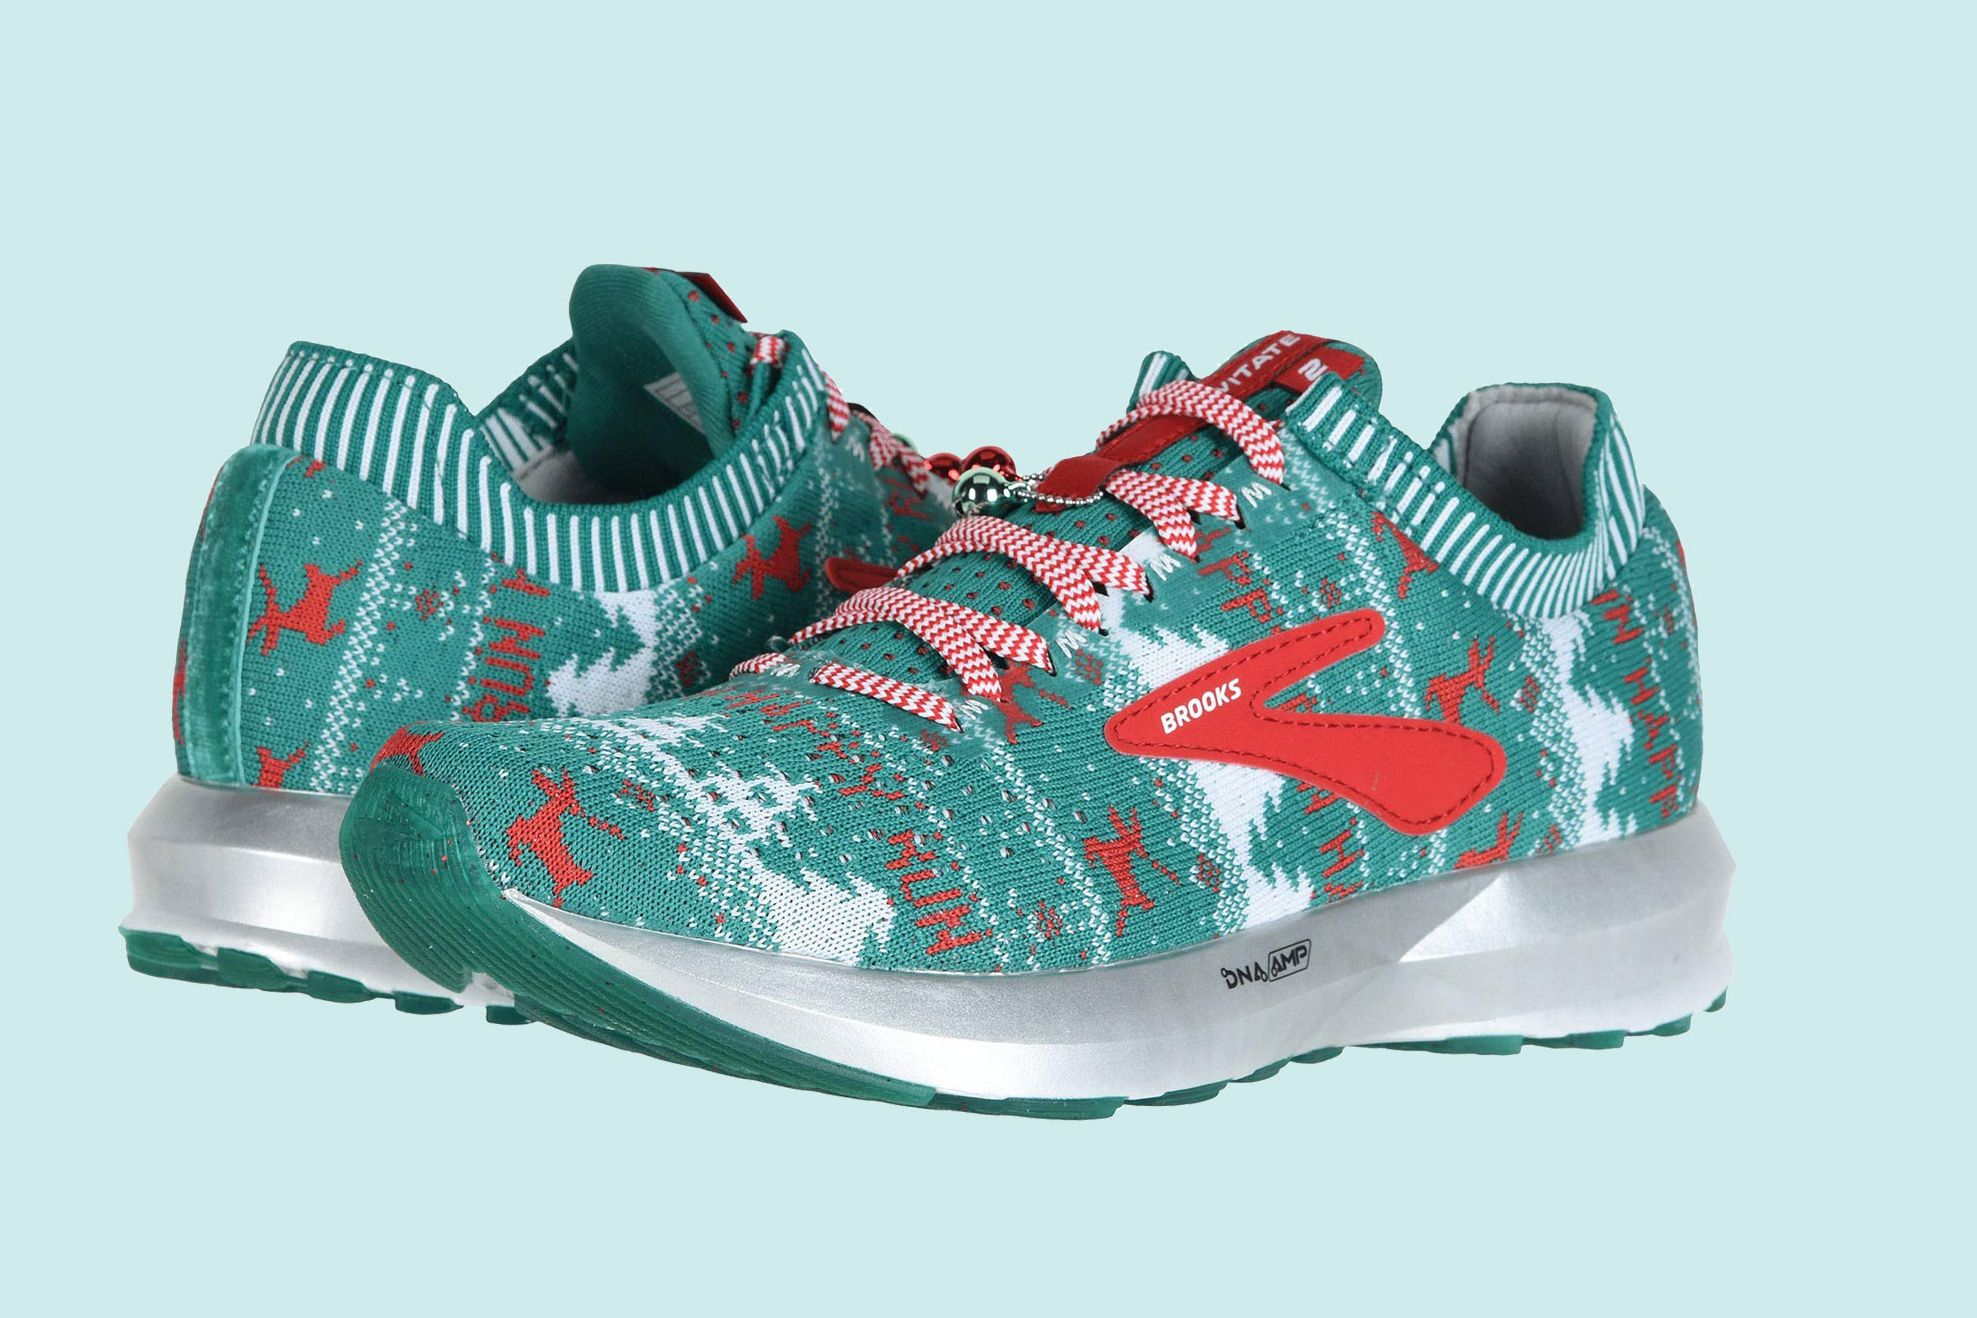 These Brooks Running Shoes Are Like an Ugly Christmas Sweater for Your Feet